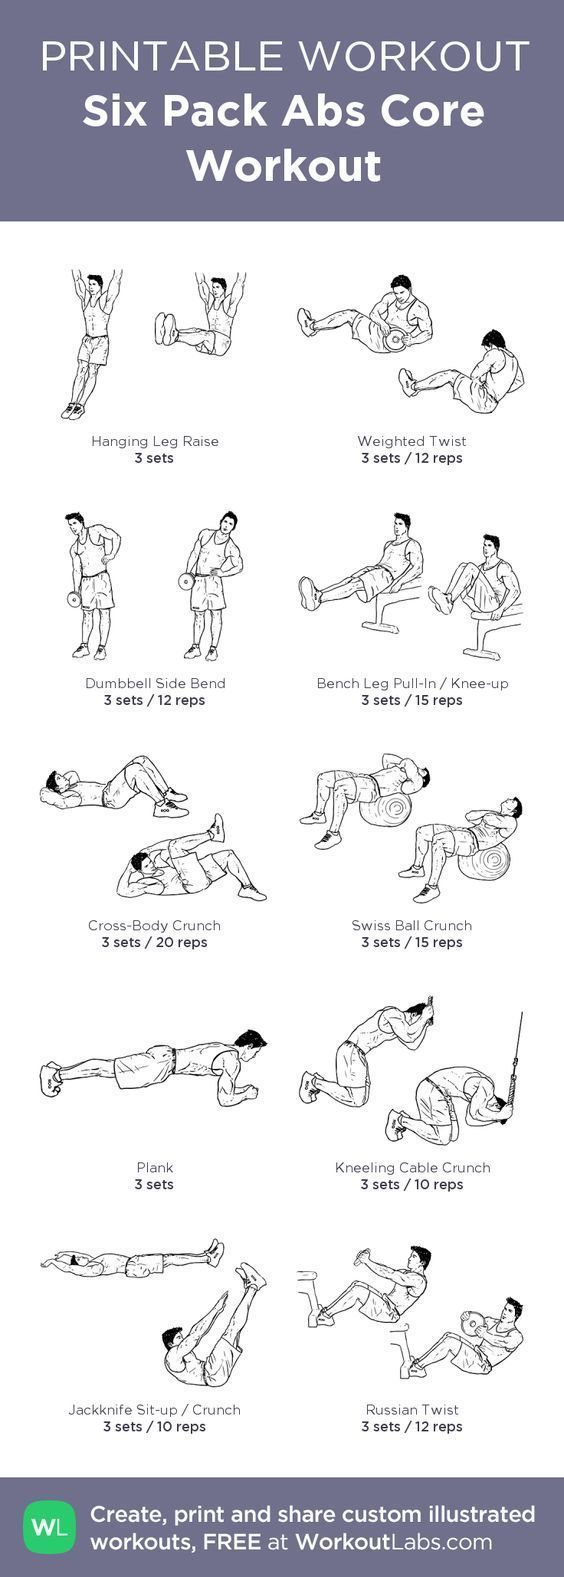 photograph regarding Printable Ab Workout known as 6 Pack Abdominal muscles Main Exercise: my personalized printable work out through